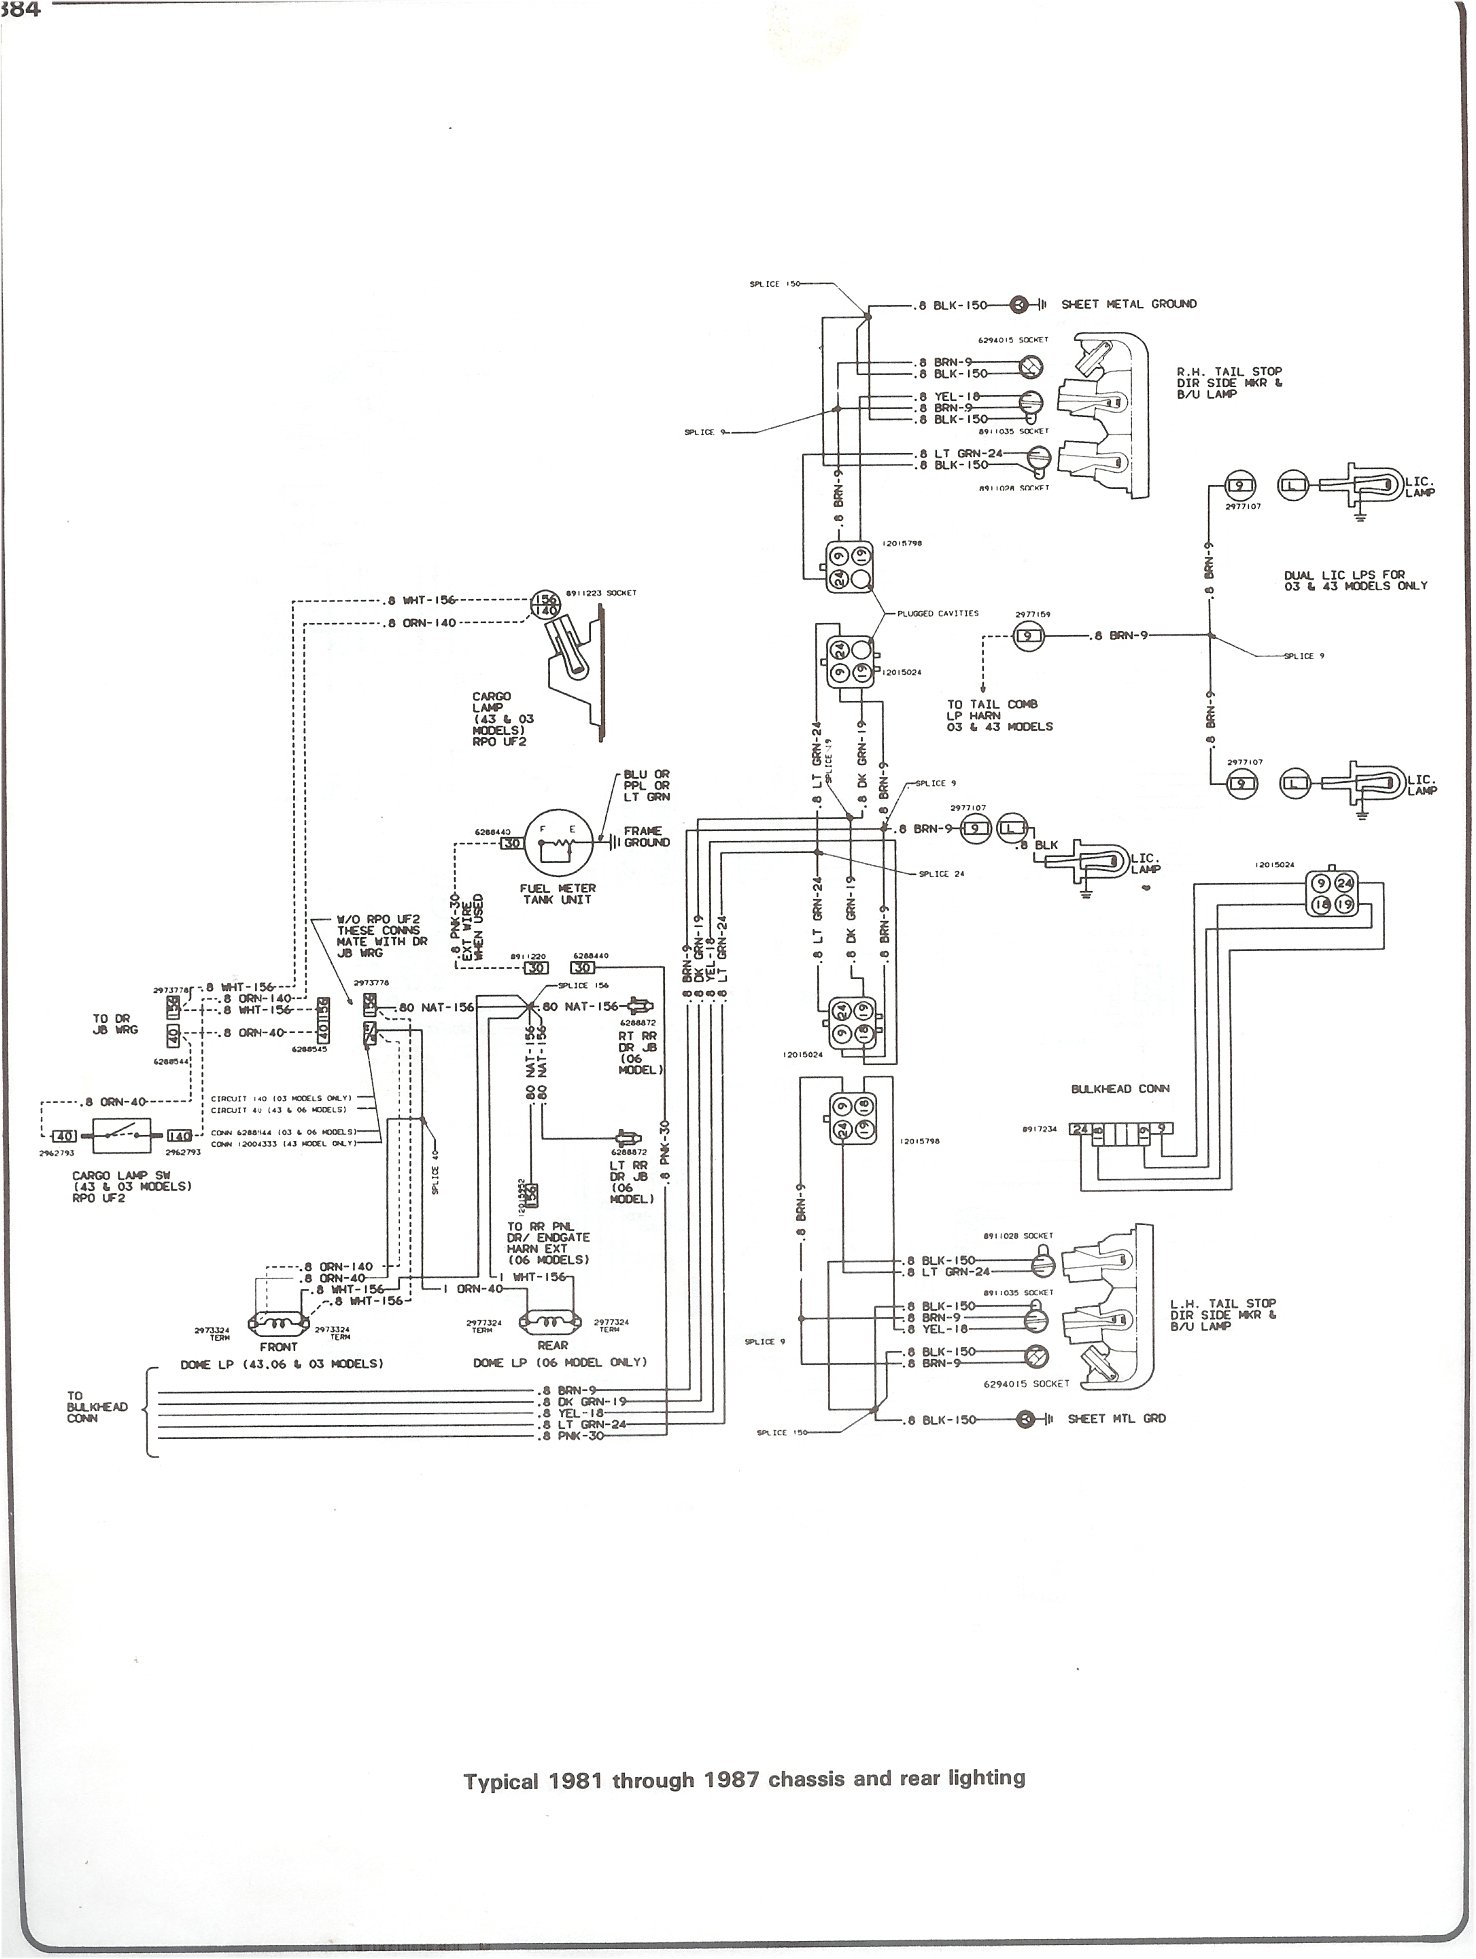 distributor wiring diagram 87 chevy 350 fwq mhcarsalederry uk GM Distributor Wiring Diagram 87 chevy wiring diagram data wiring diagram update rh 11 caribeboten nl gm hei distributor wiring distributor wiring diagram 80 chevy 350